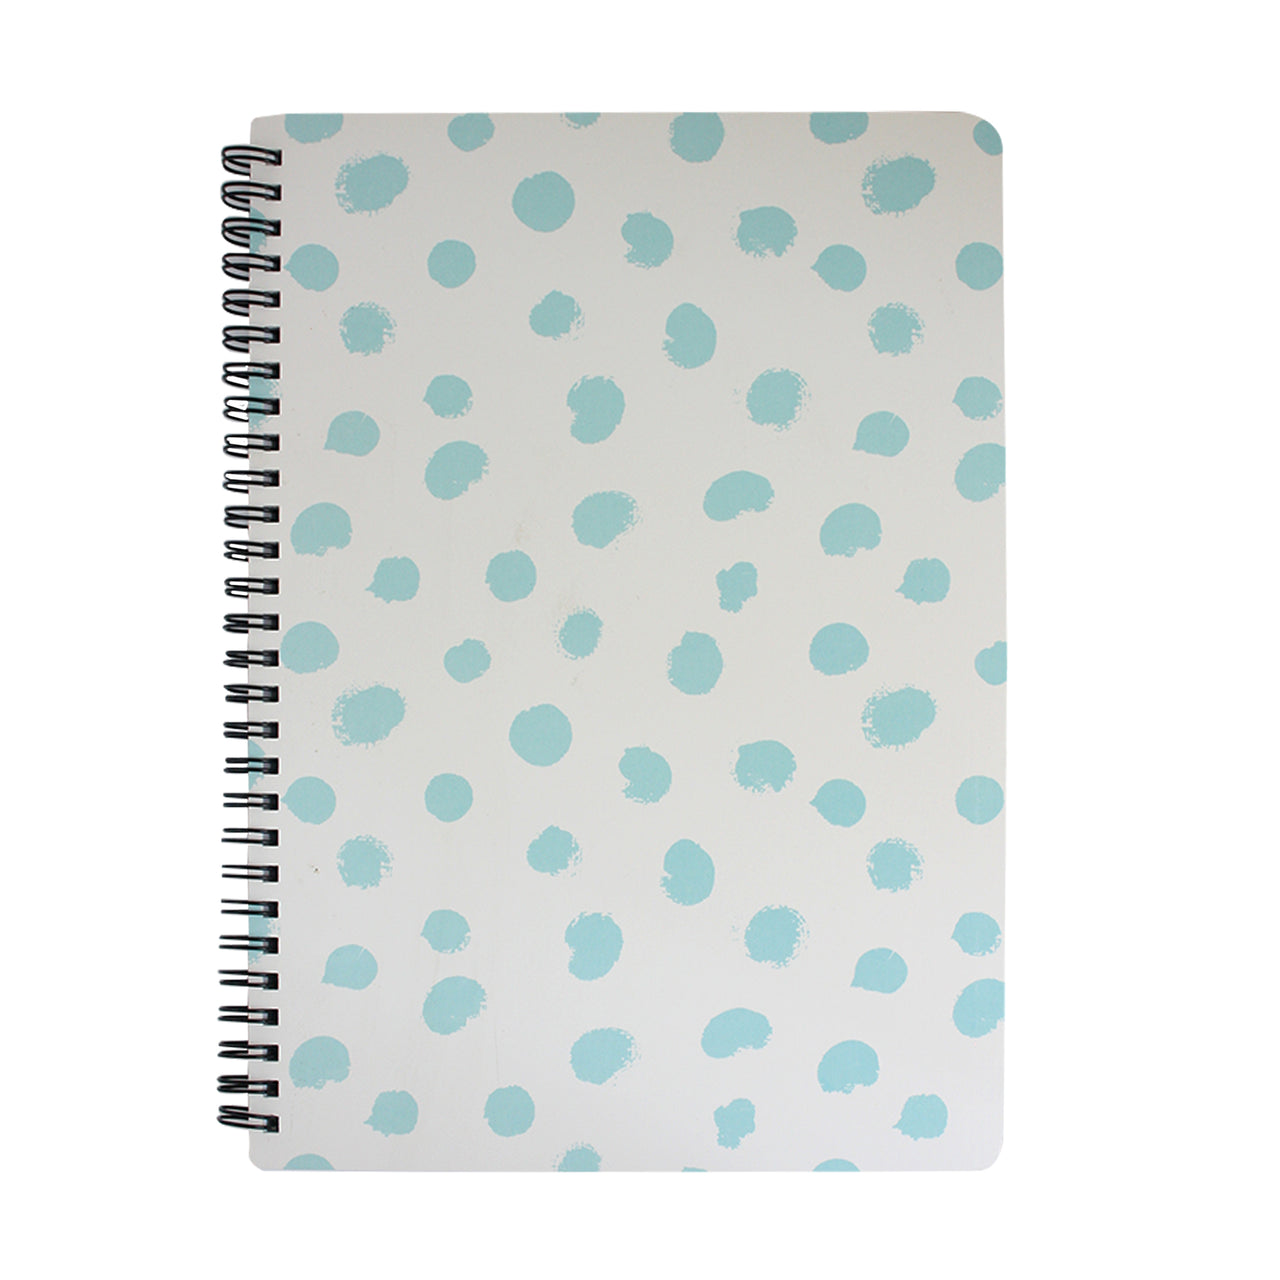 B5 Printed Notebook - White / Blue